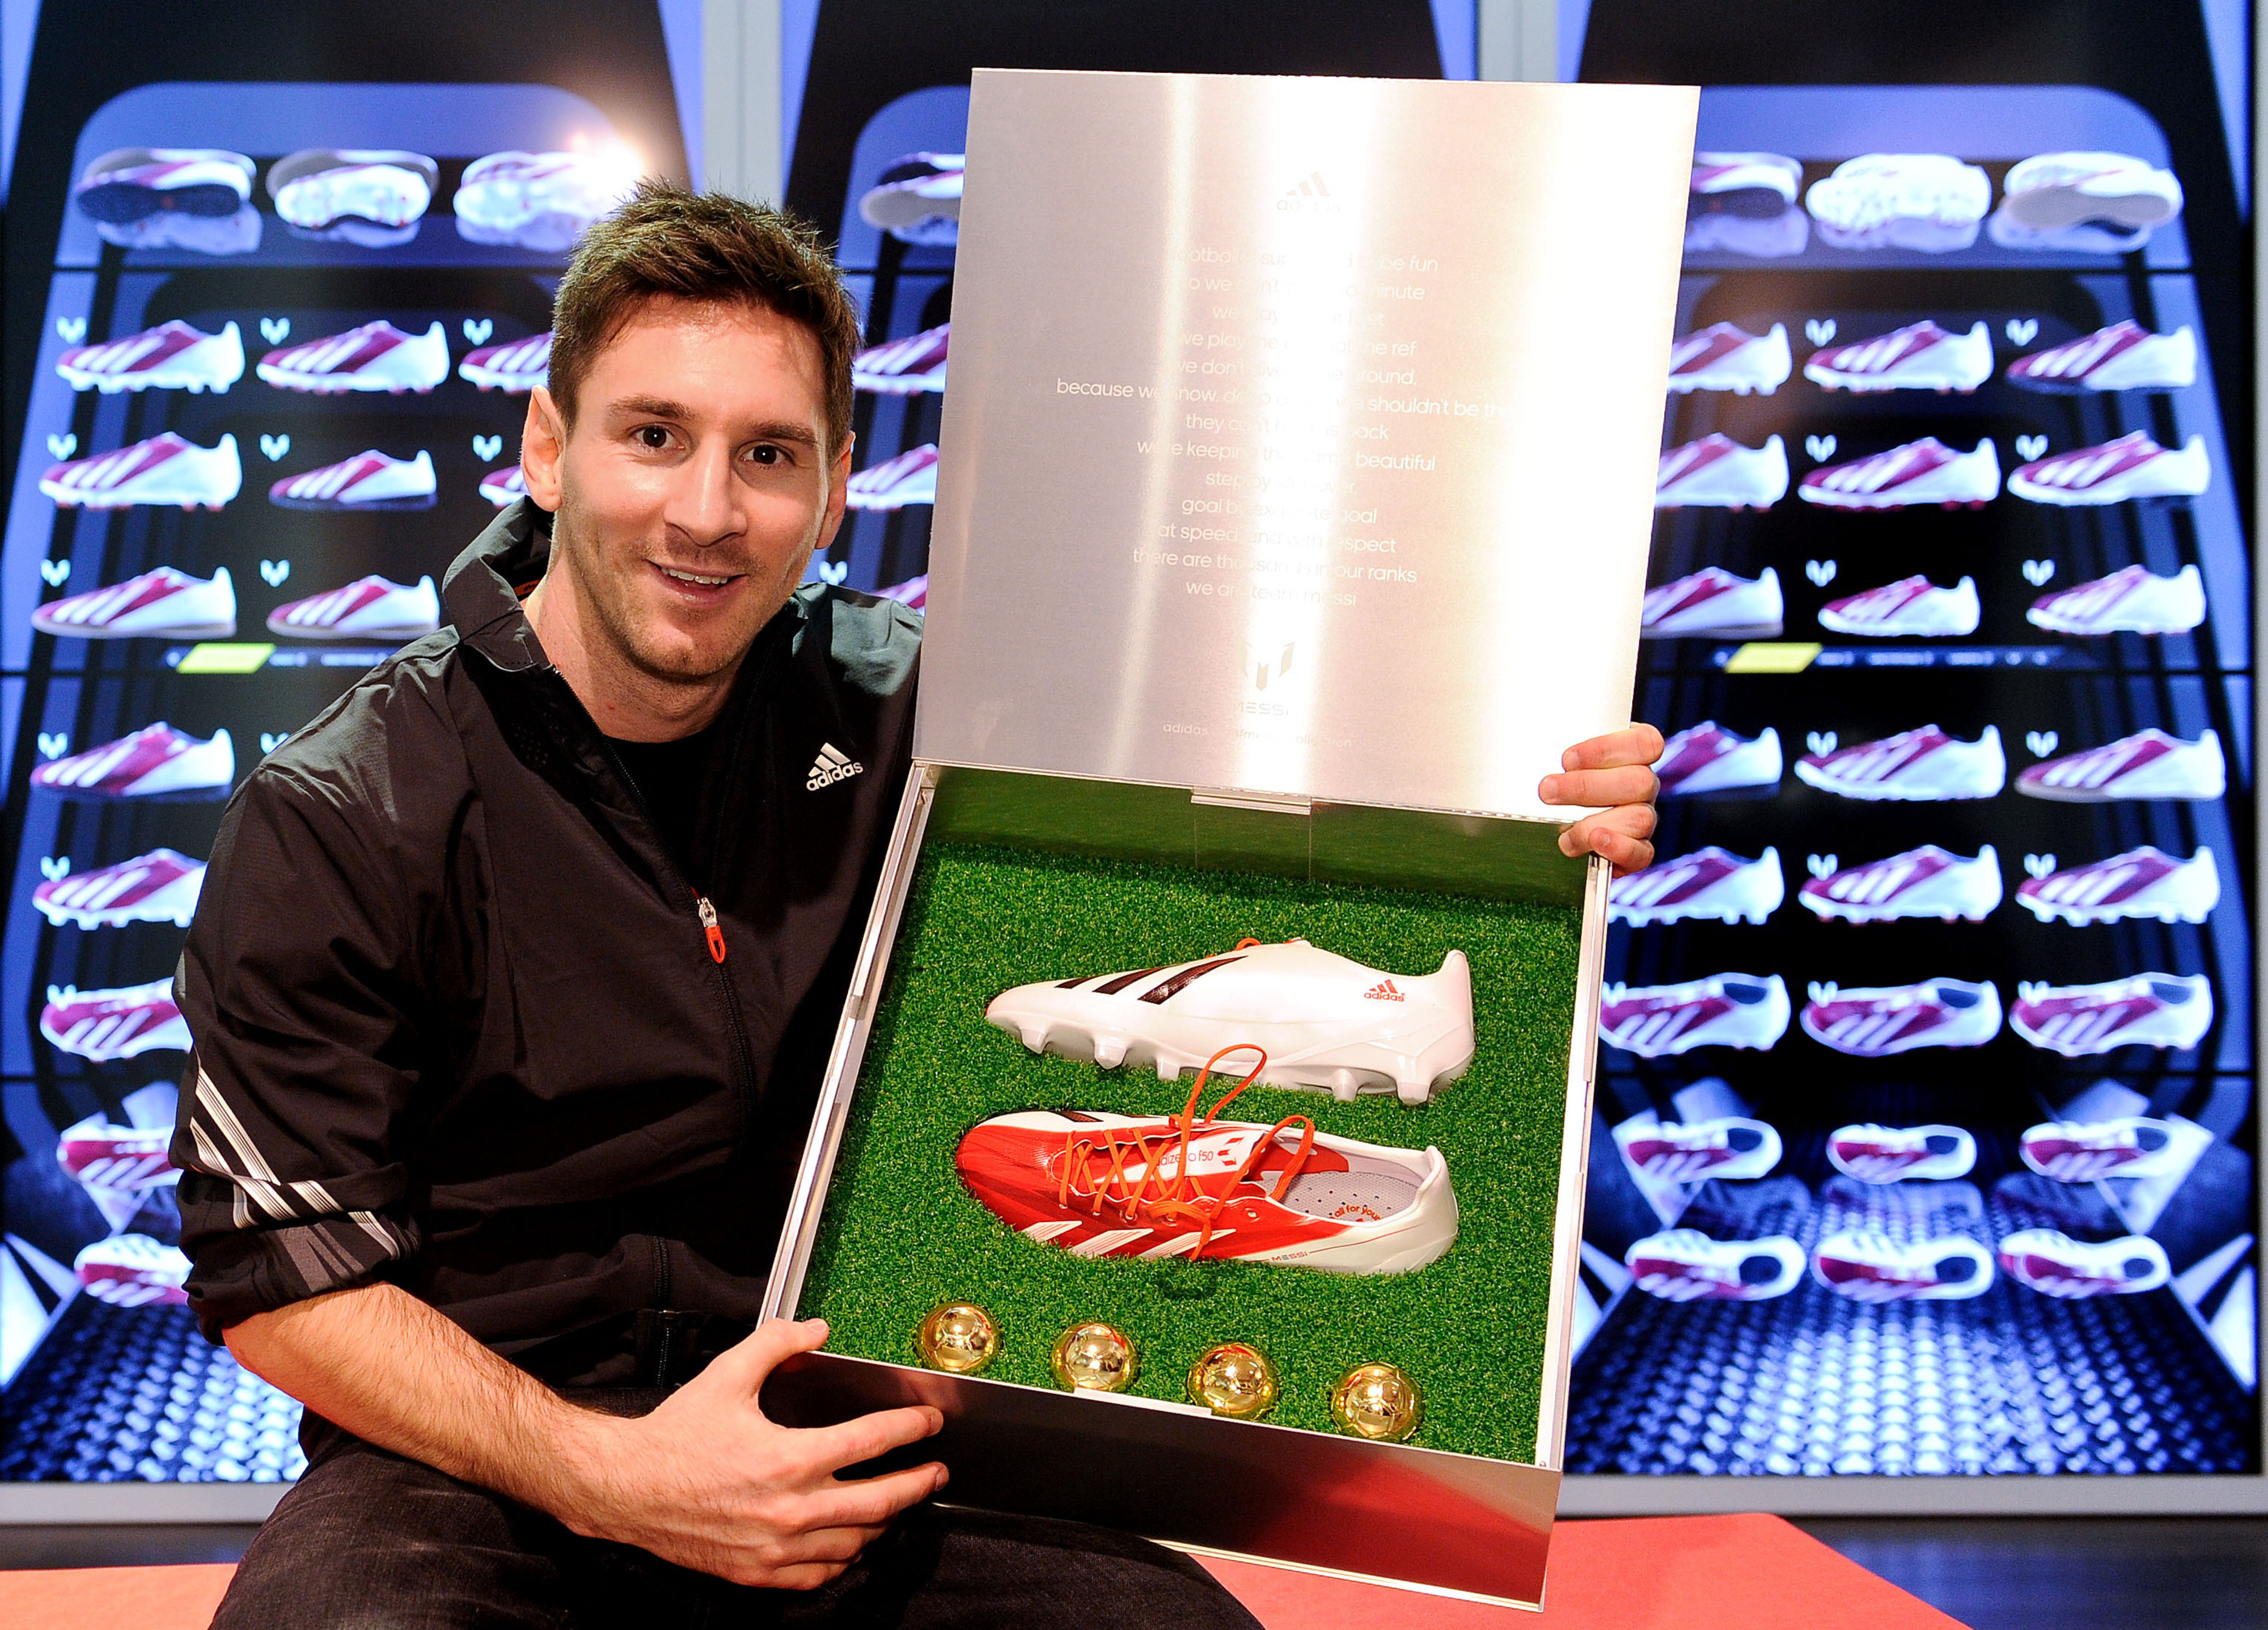 It's nice of them to make a box that's actually bigger than Messi himself.